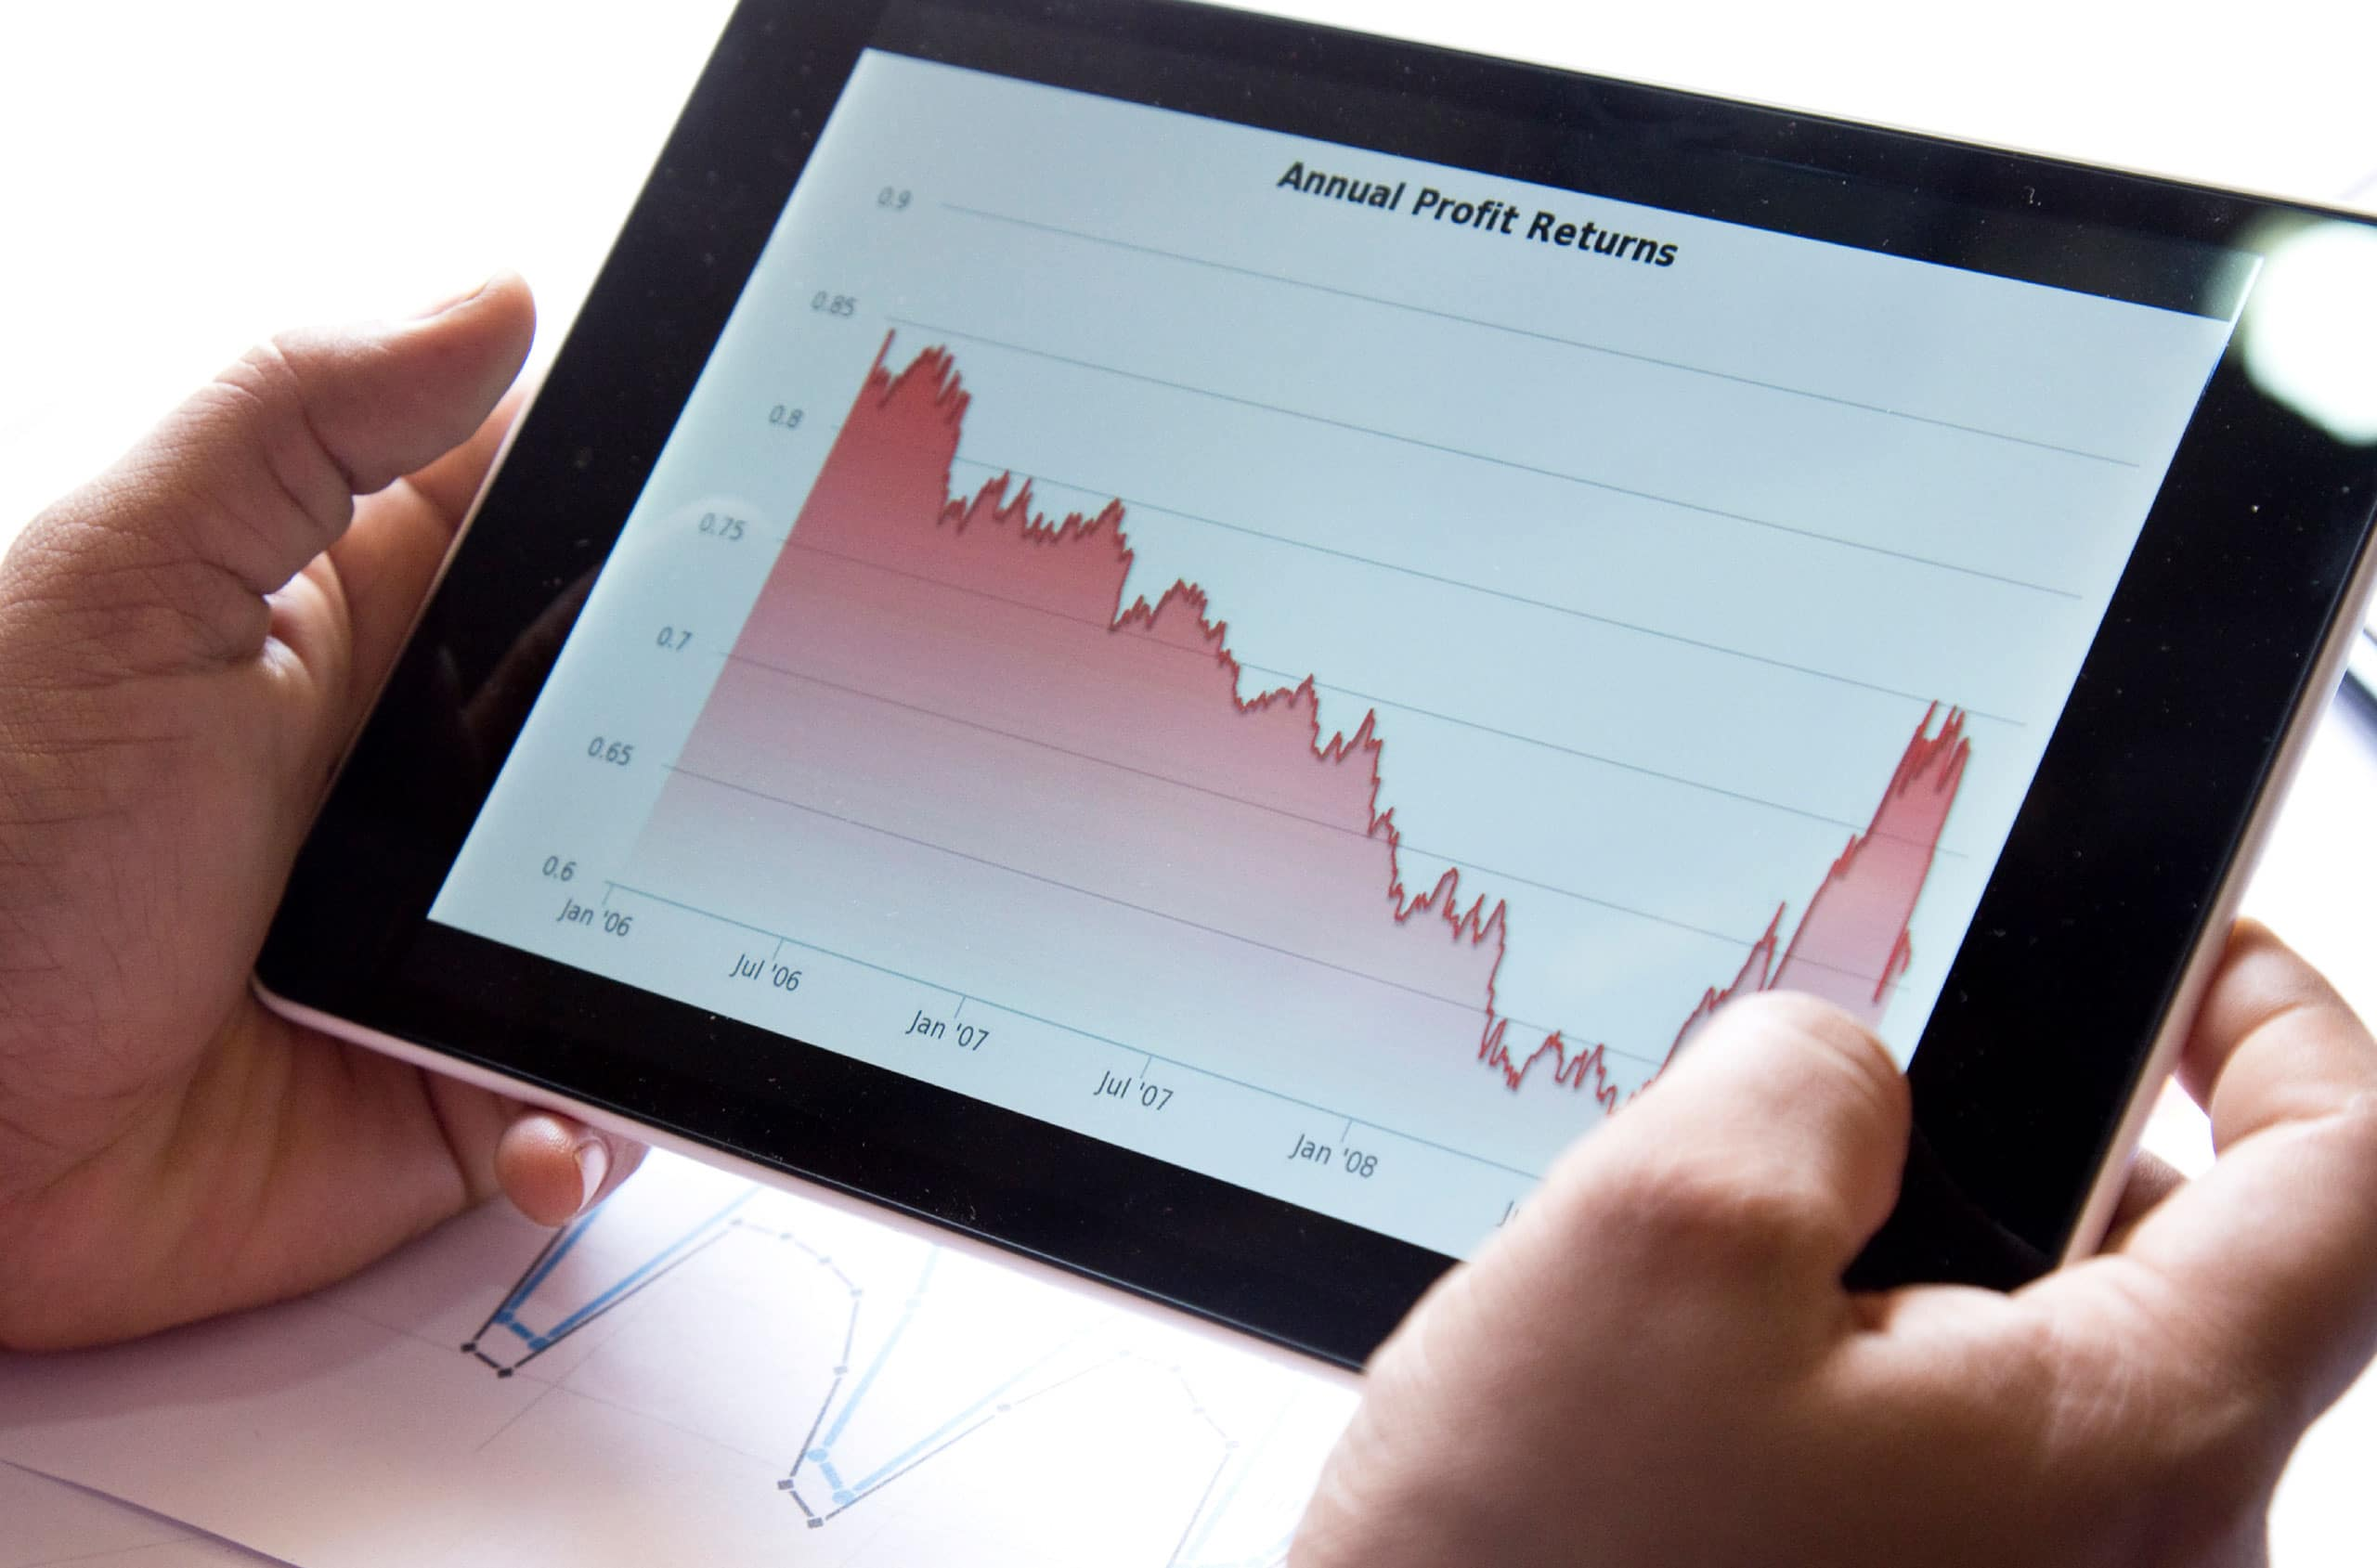 Stock market drop shown on tablet